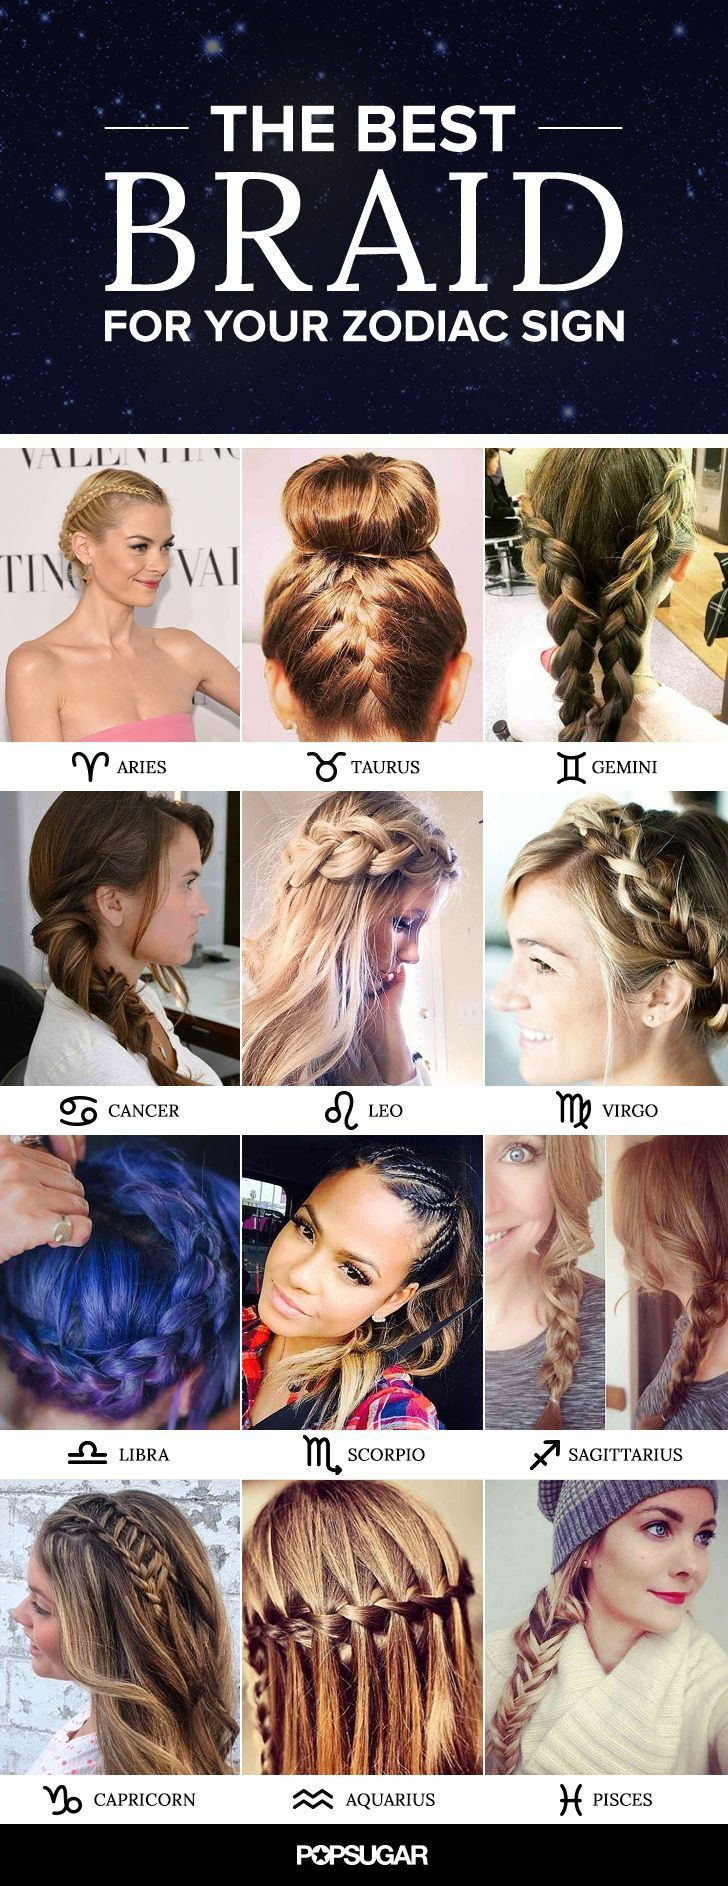 Find The Best Braid For Your Zodiac Sign Hairstyles Pinterest